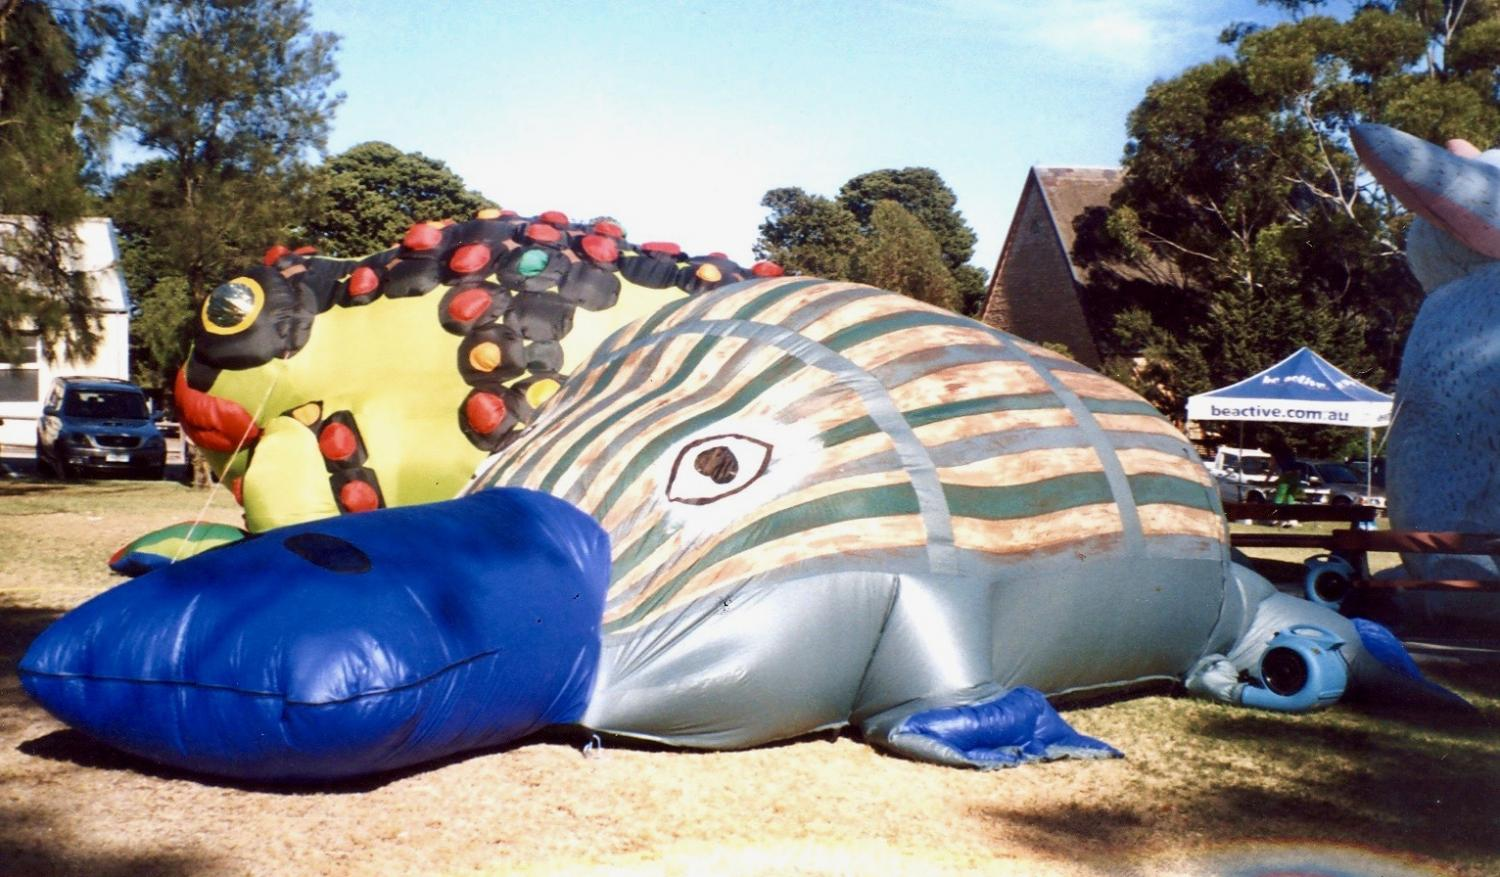 Giant inflatable platypus  - Evelyn Roth